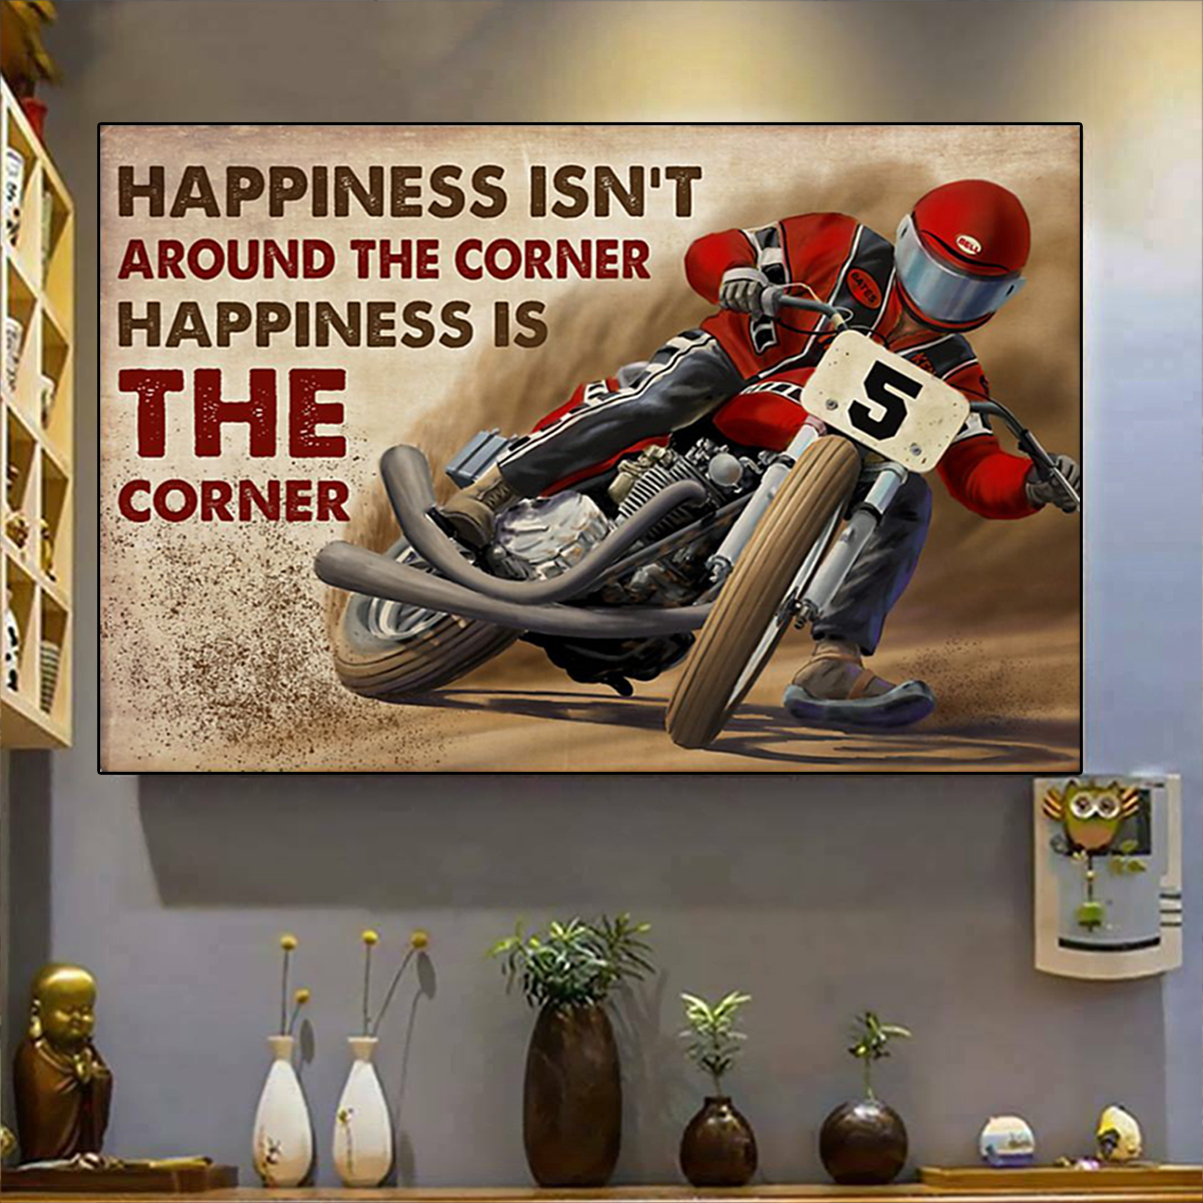 Flat track racing happiness isn't around the corner poster A2